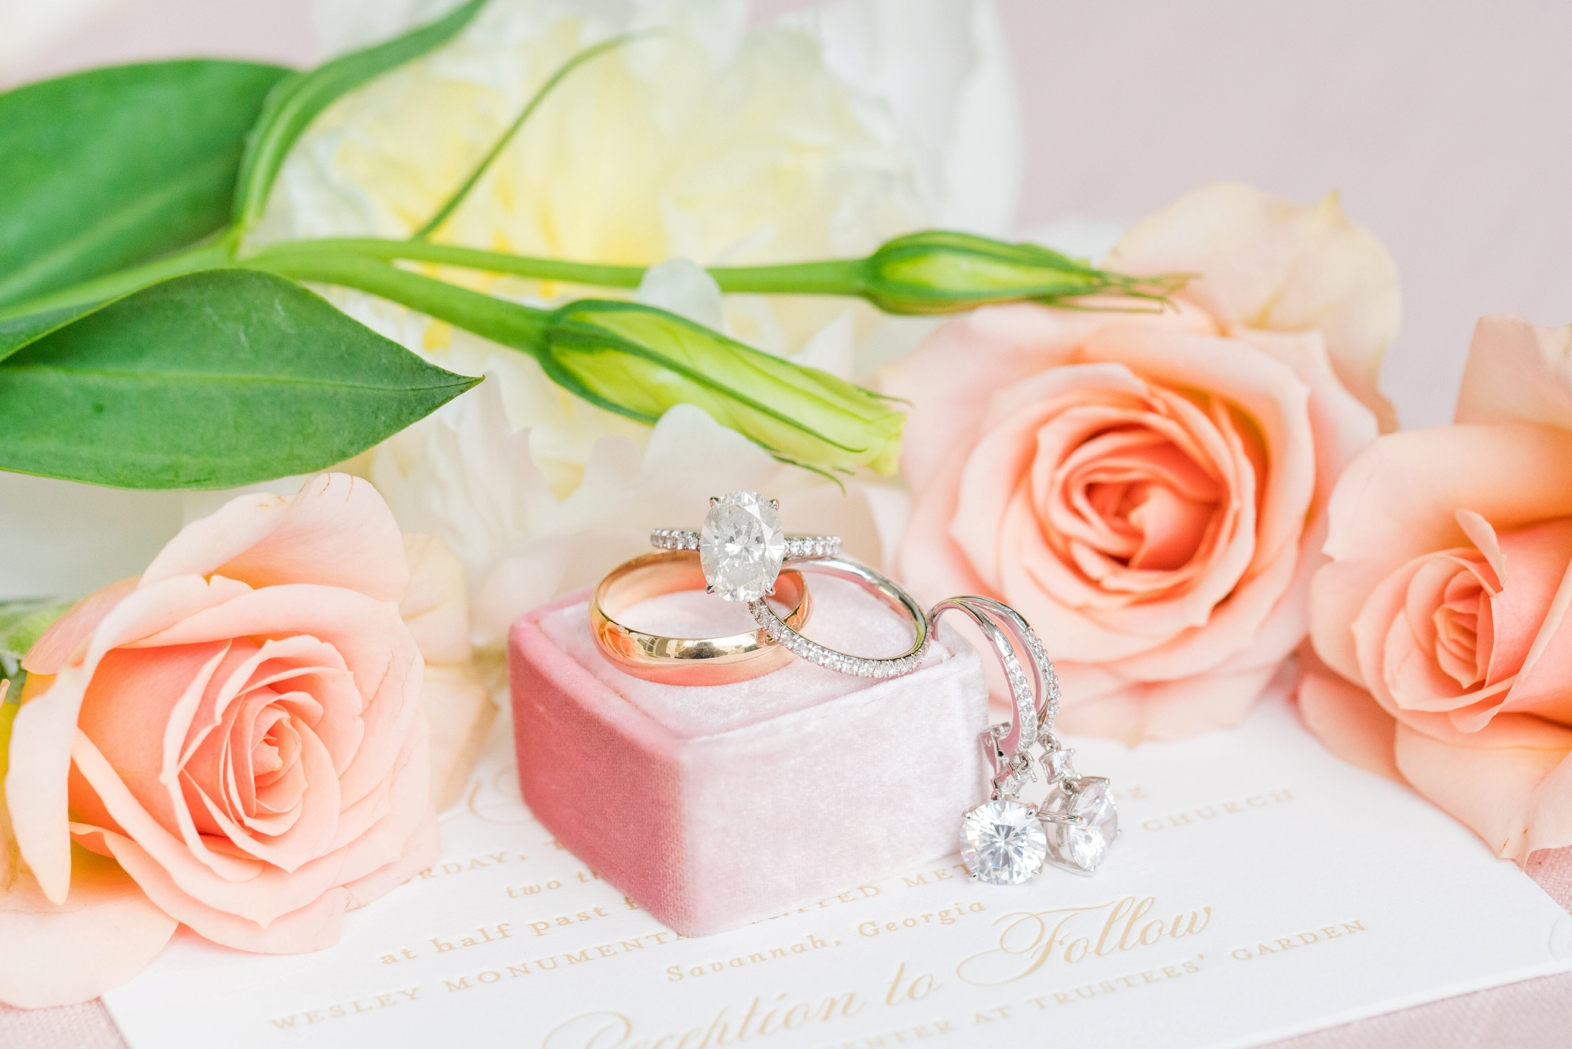 Gold and diamond rings and earrings with pale orange roses  - photo by Dana Cubbage Weddings